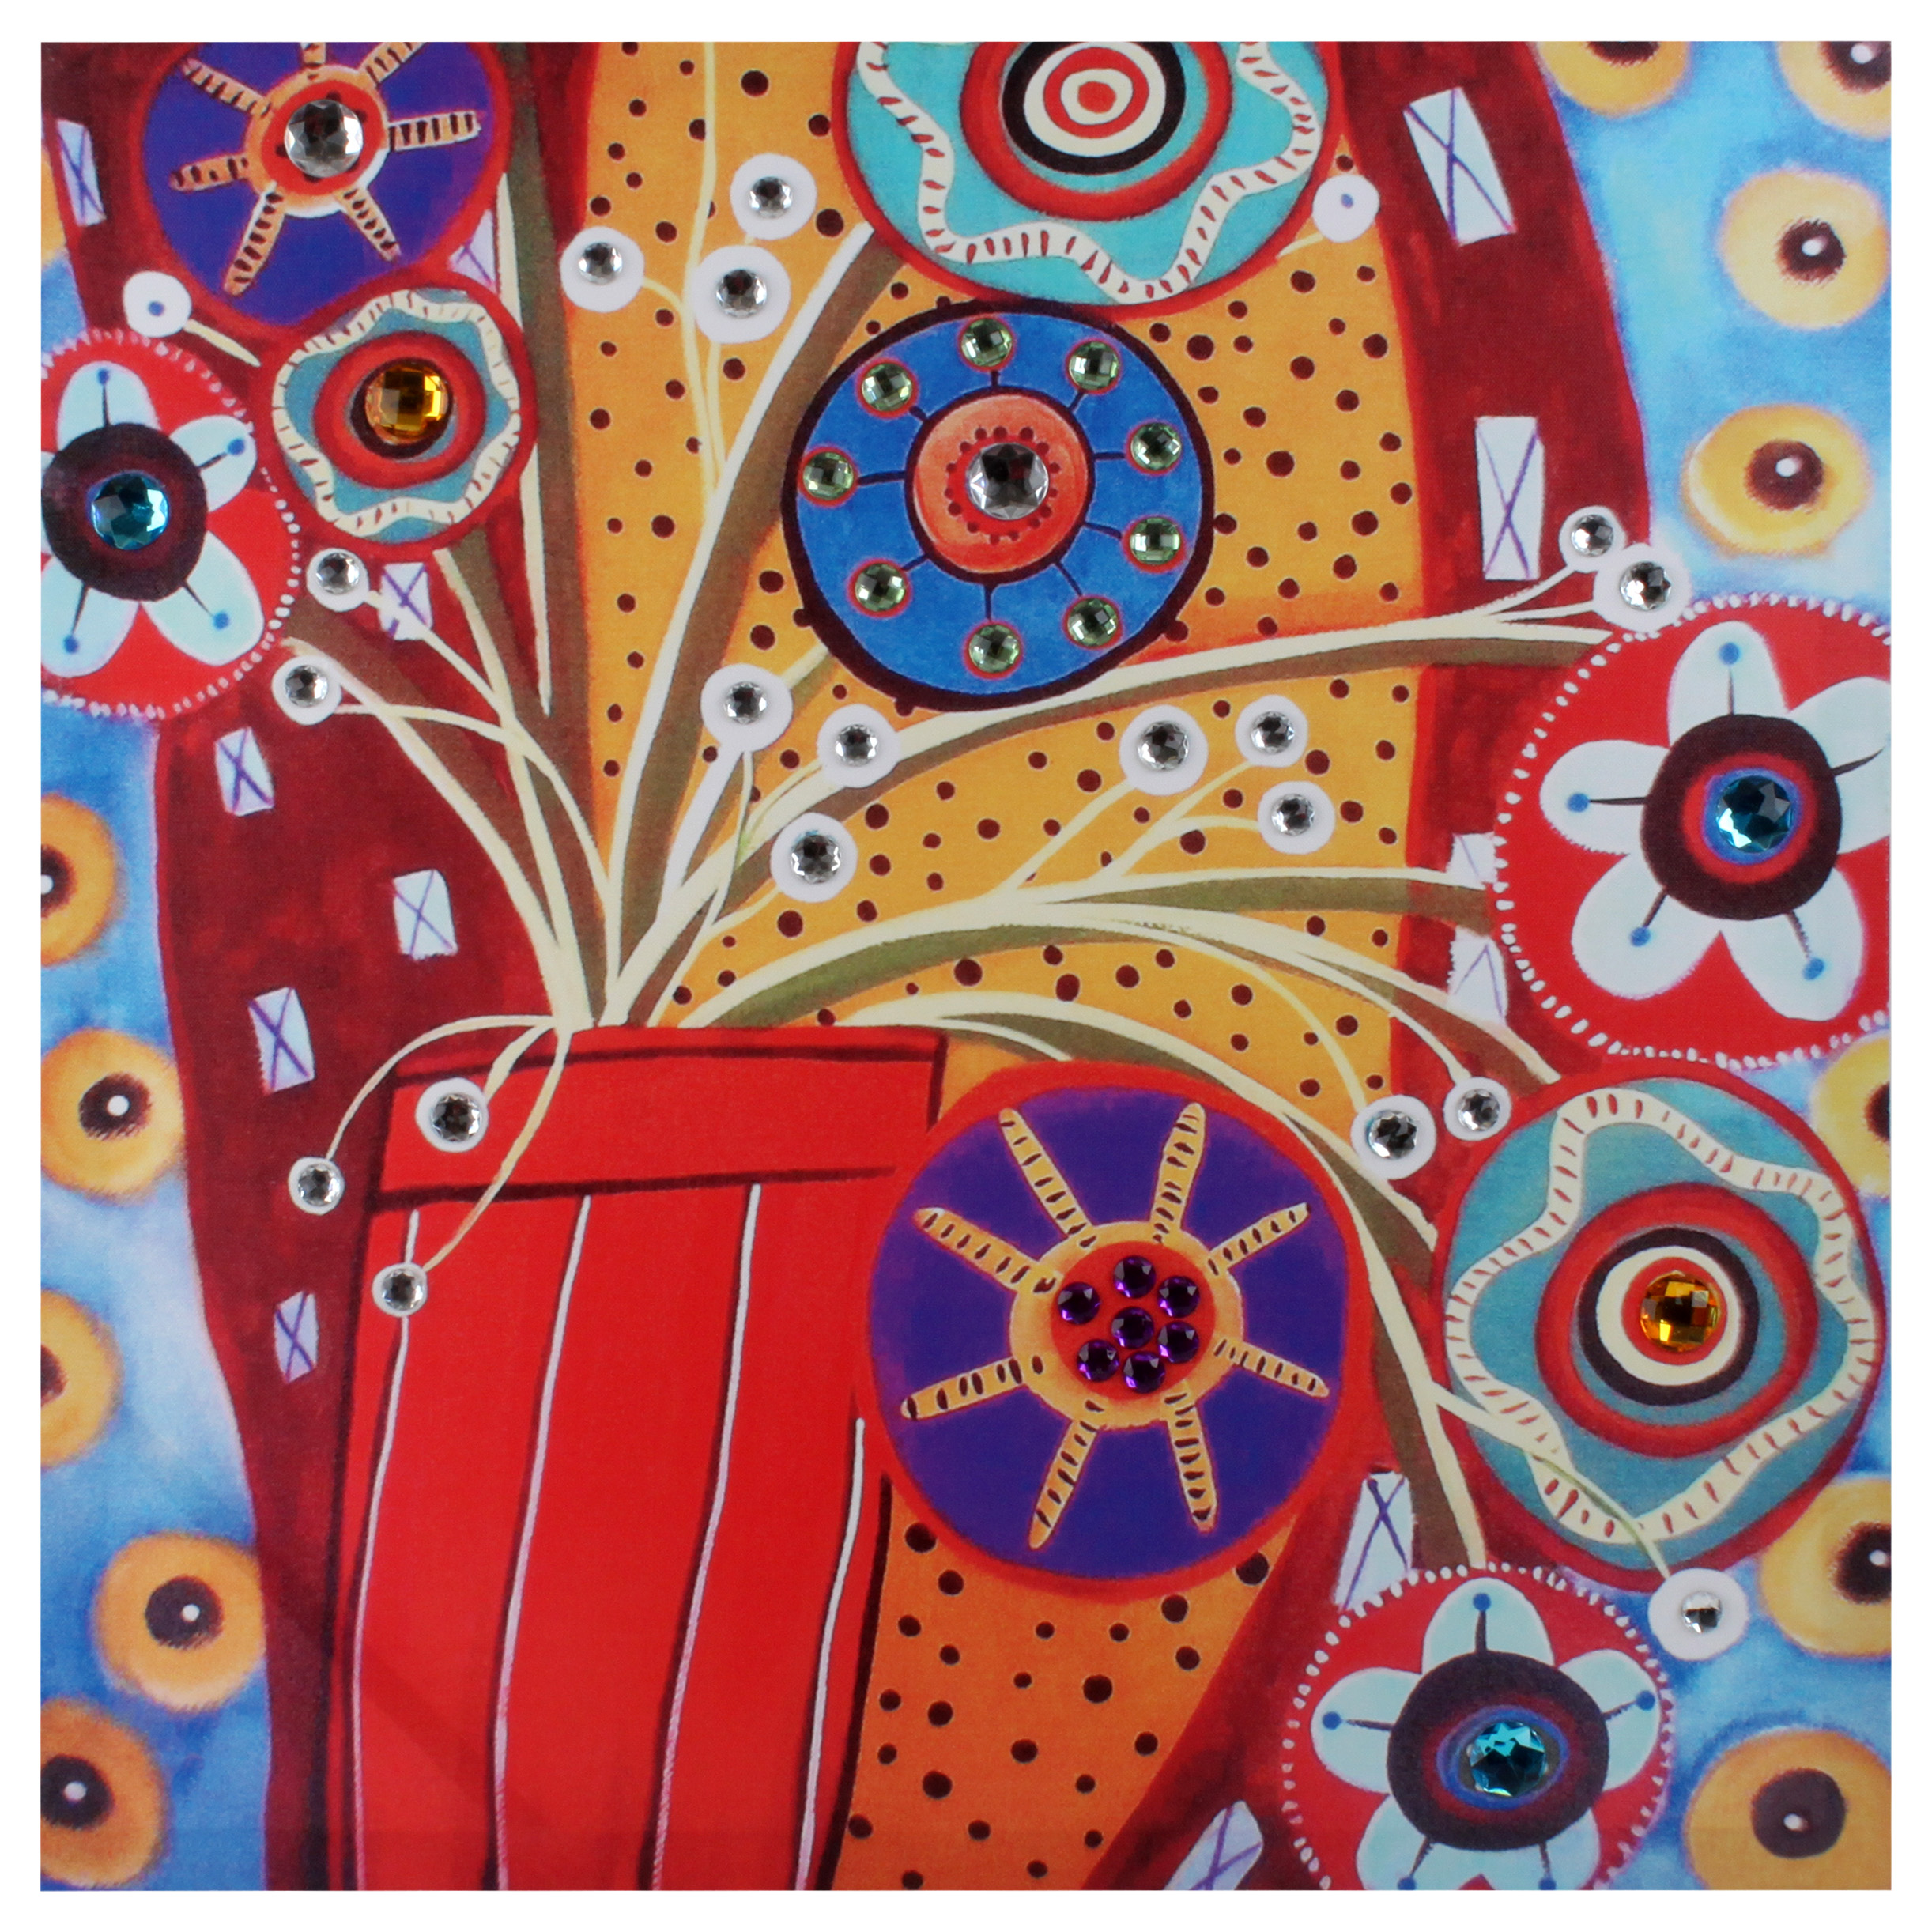 €20 WALL PAINTING PRINTED CANVAS W/STONES 60Χ2Χ60